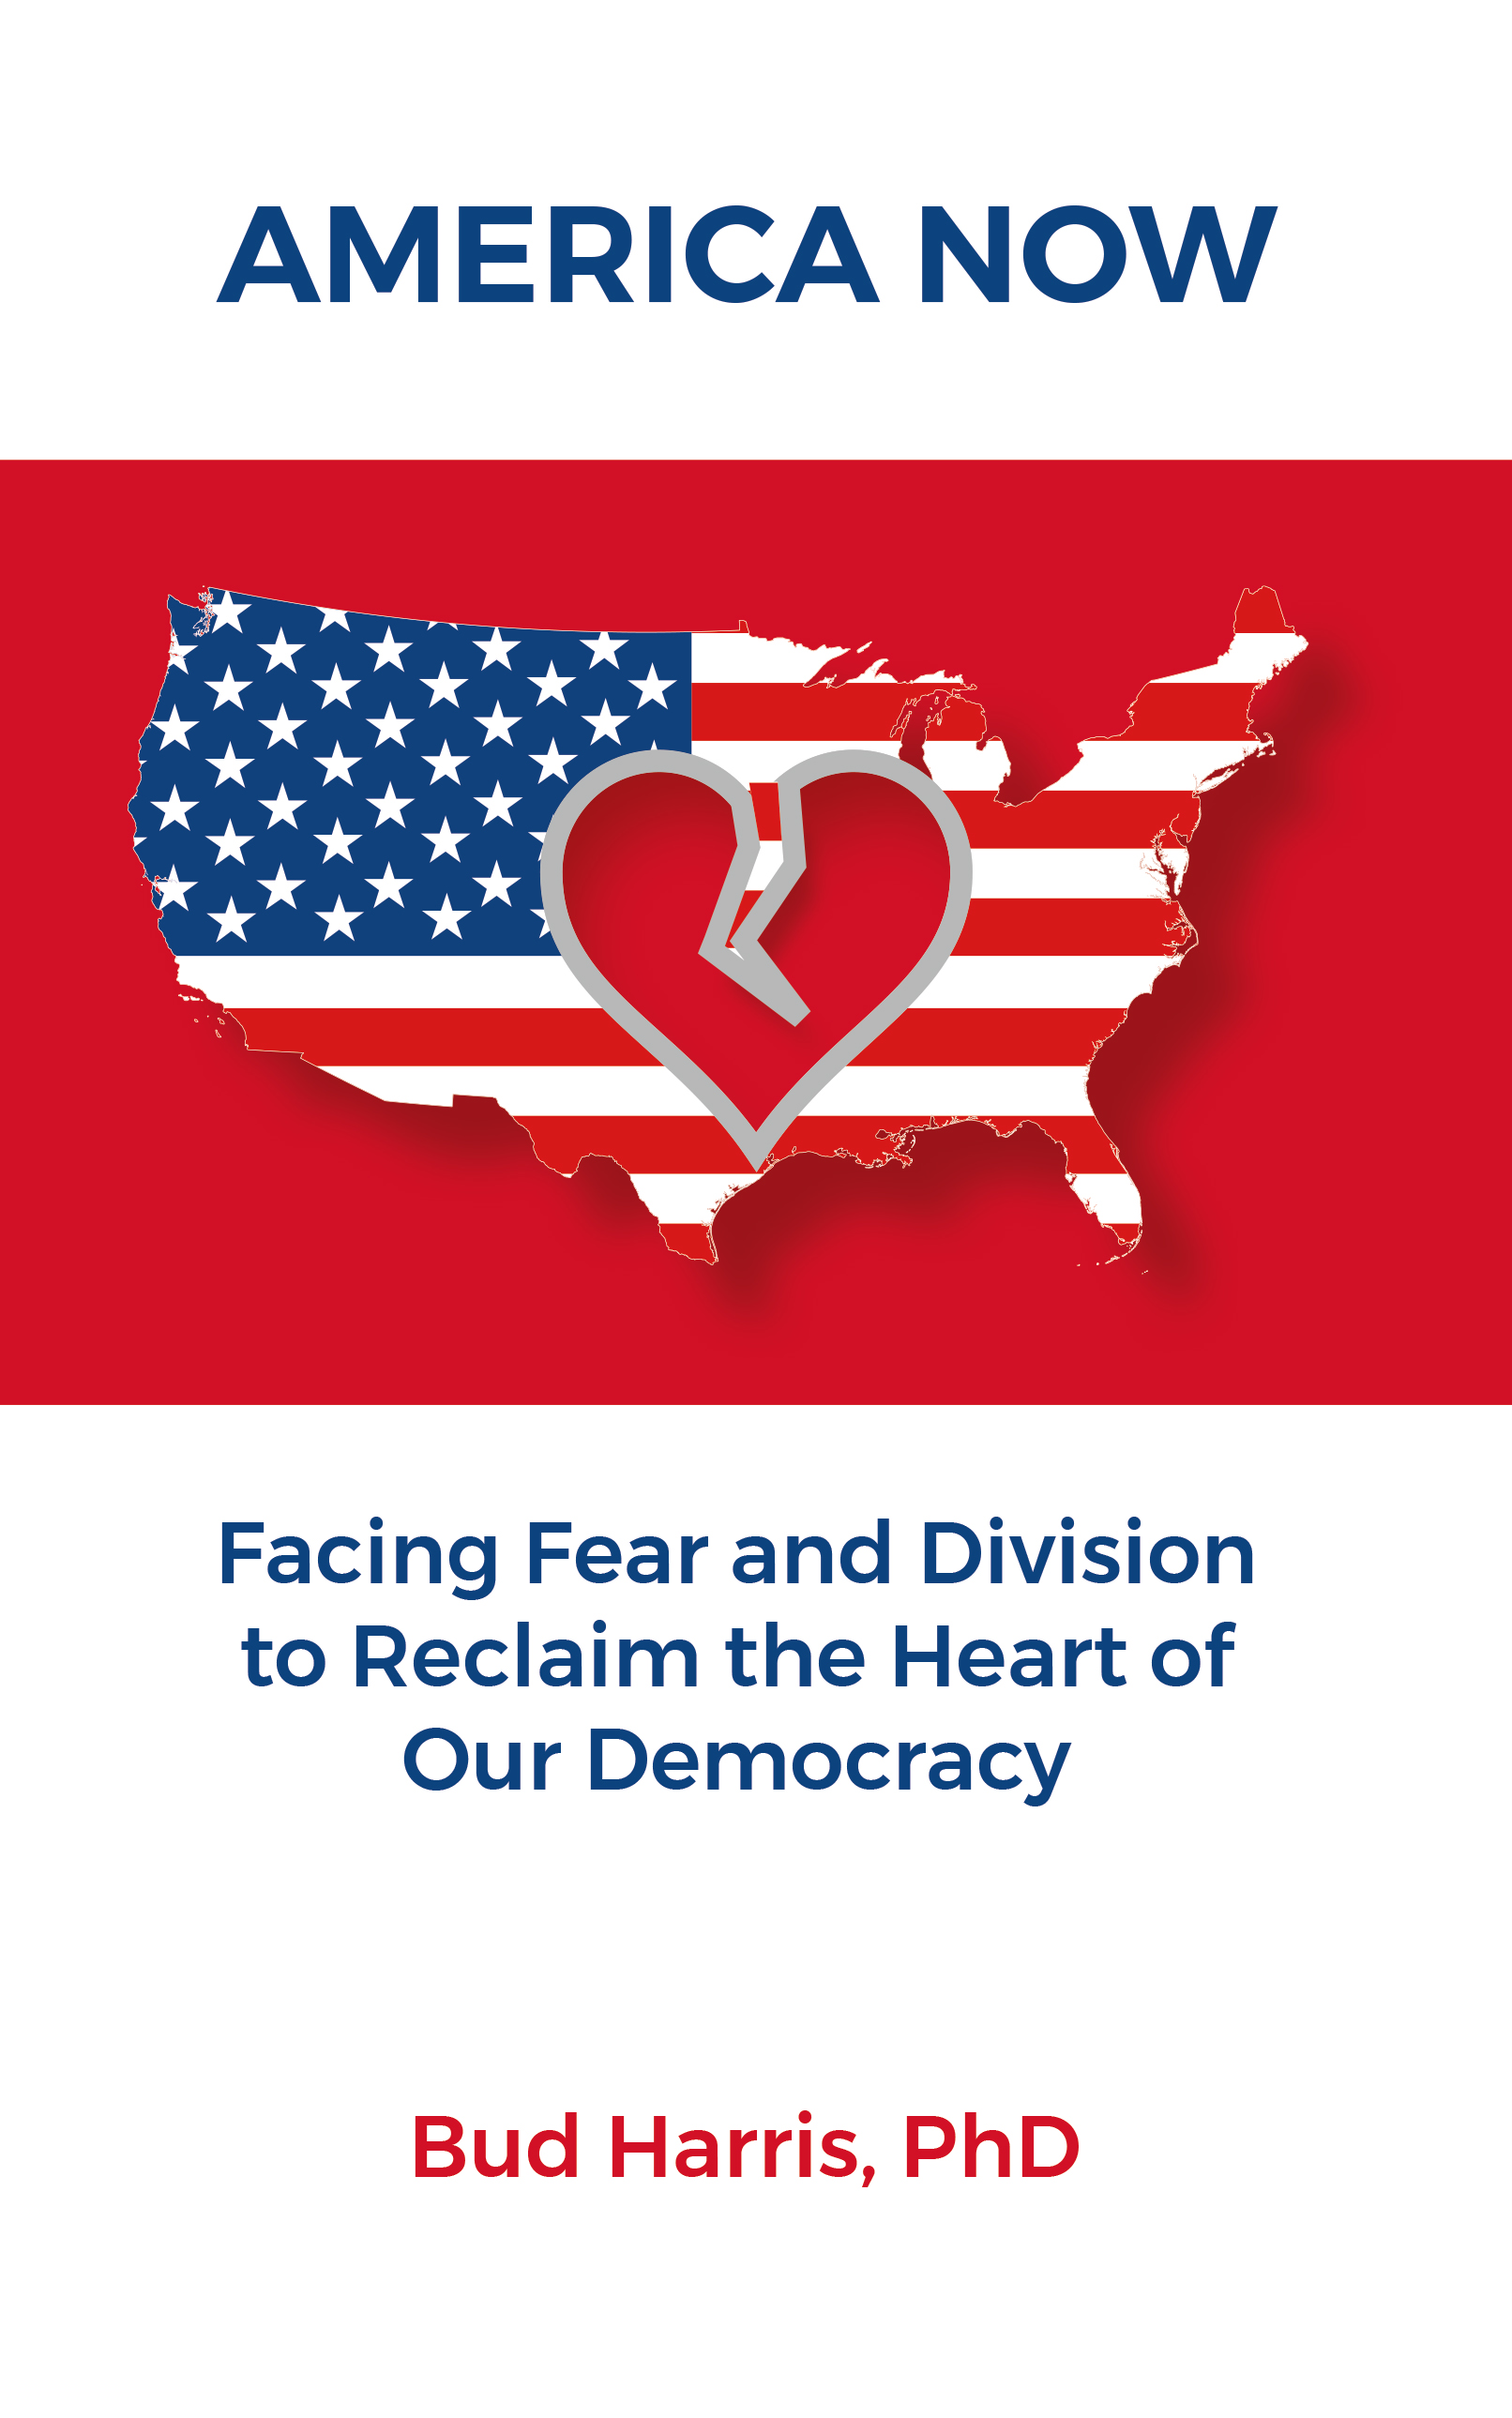 America Now: Facing Fear and Division to Reclaim the Heart of Our Deomocracy